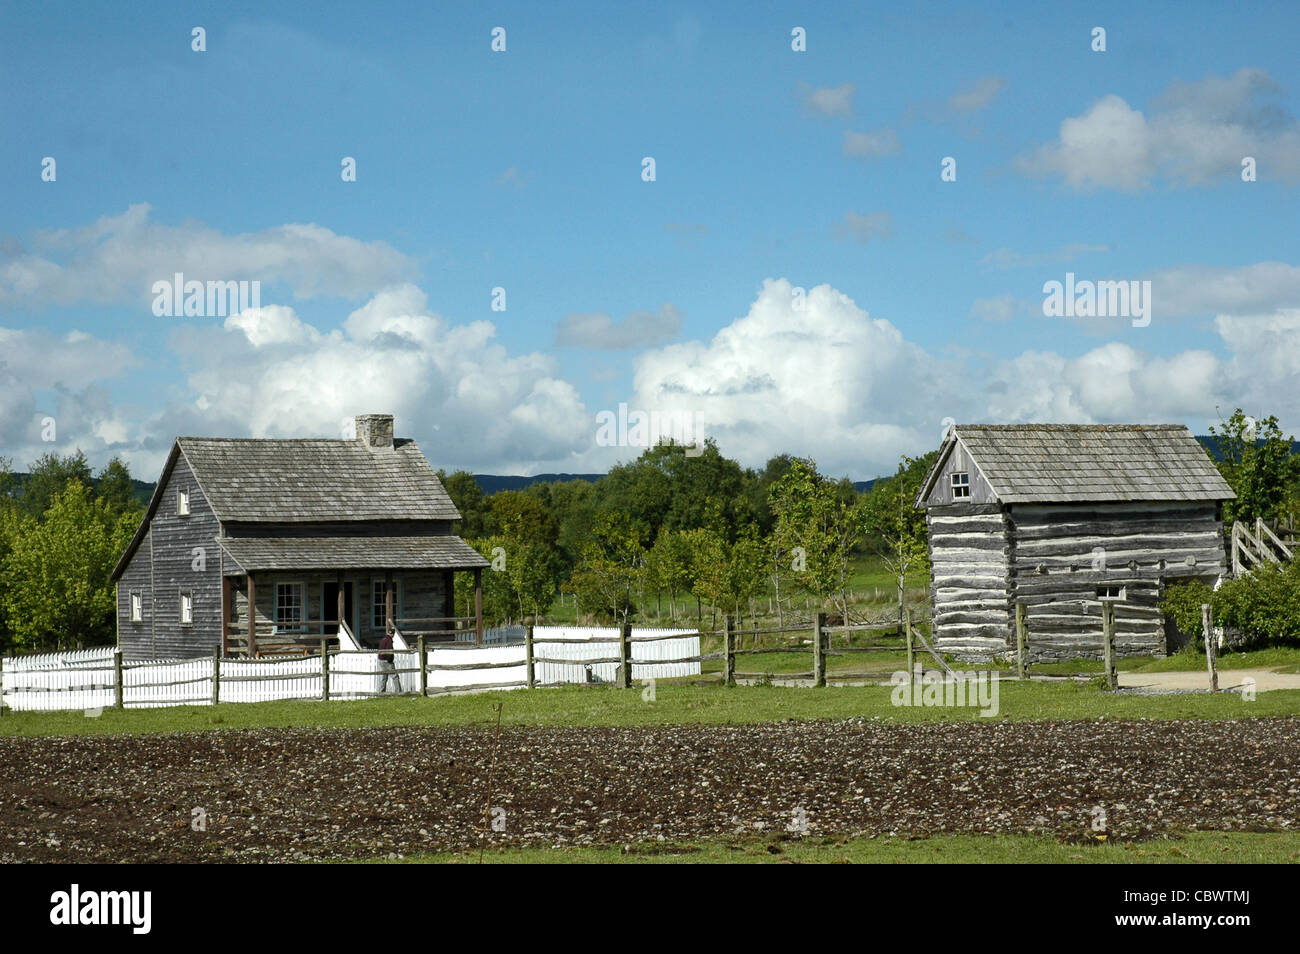 American Folk Park - Omagh - Northern Ireland - Stock Image